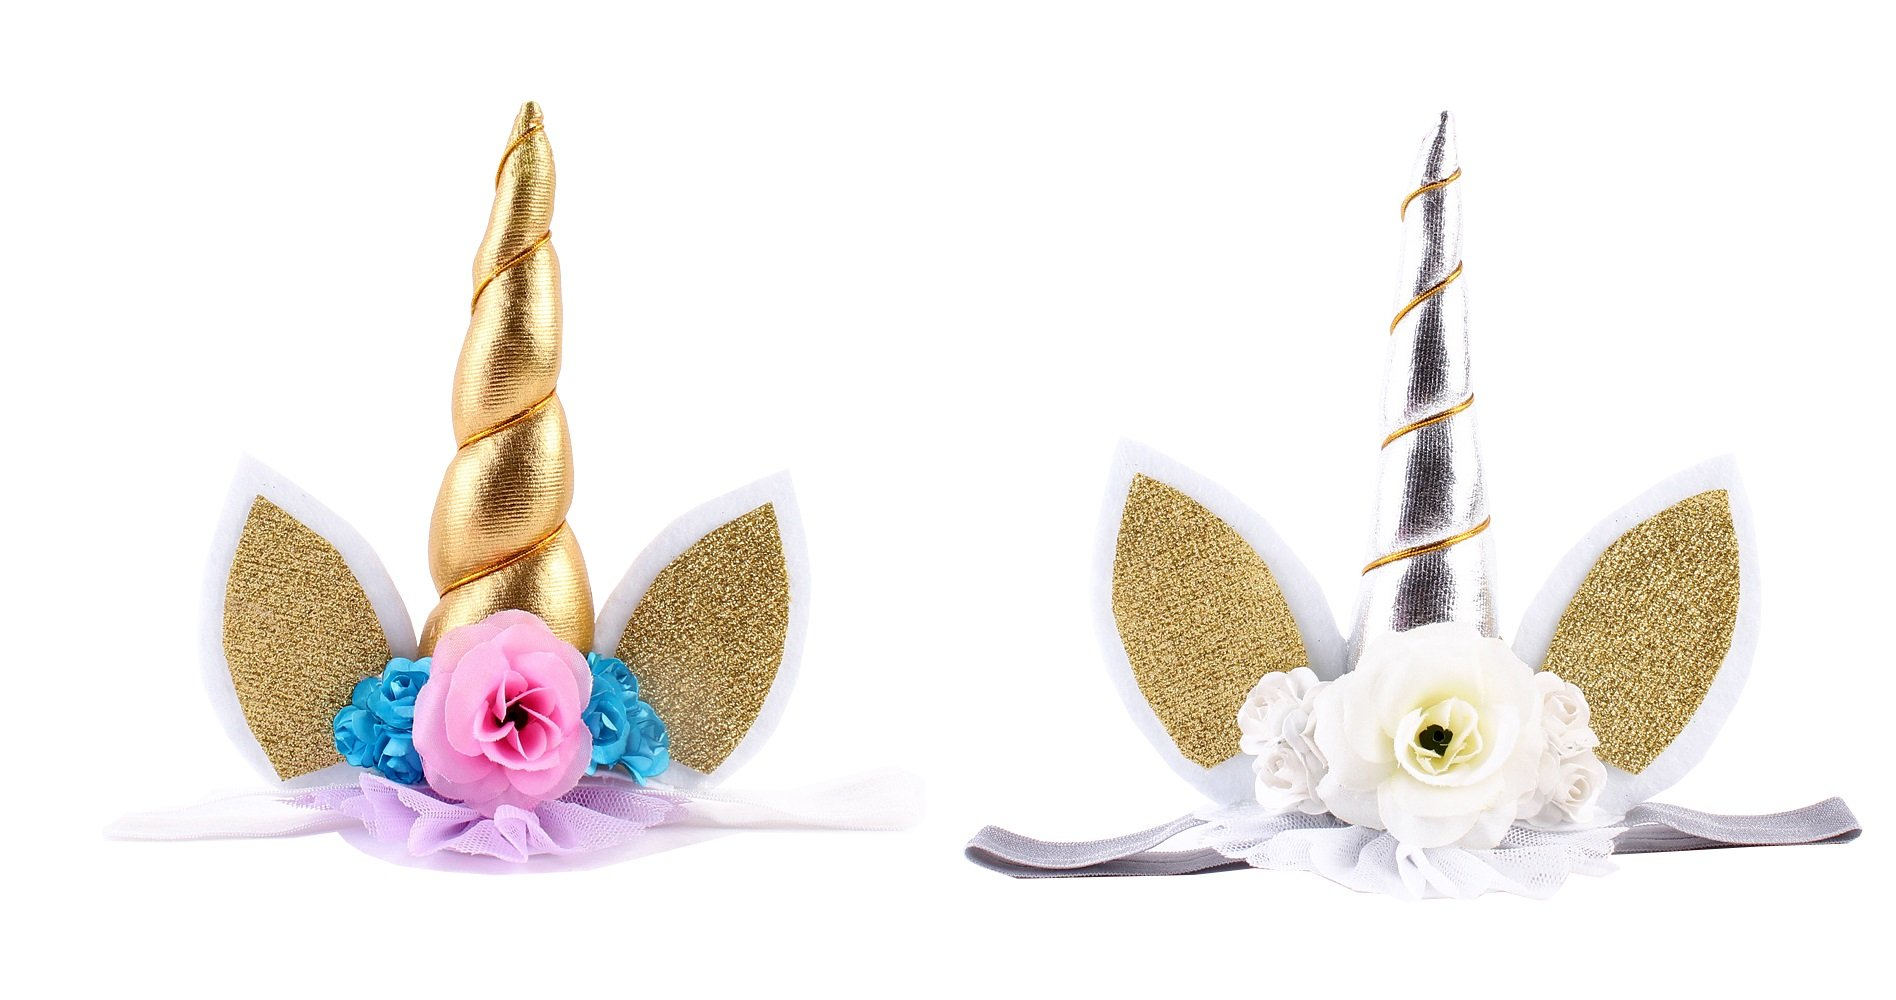 Junliyuan 2-Pack Cute Animal Princess Flower Headbands with Glitter Unicorn Crown for Halloween/Christmas/Birthday Party (Gold + Silver)